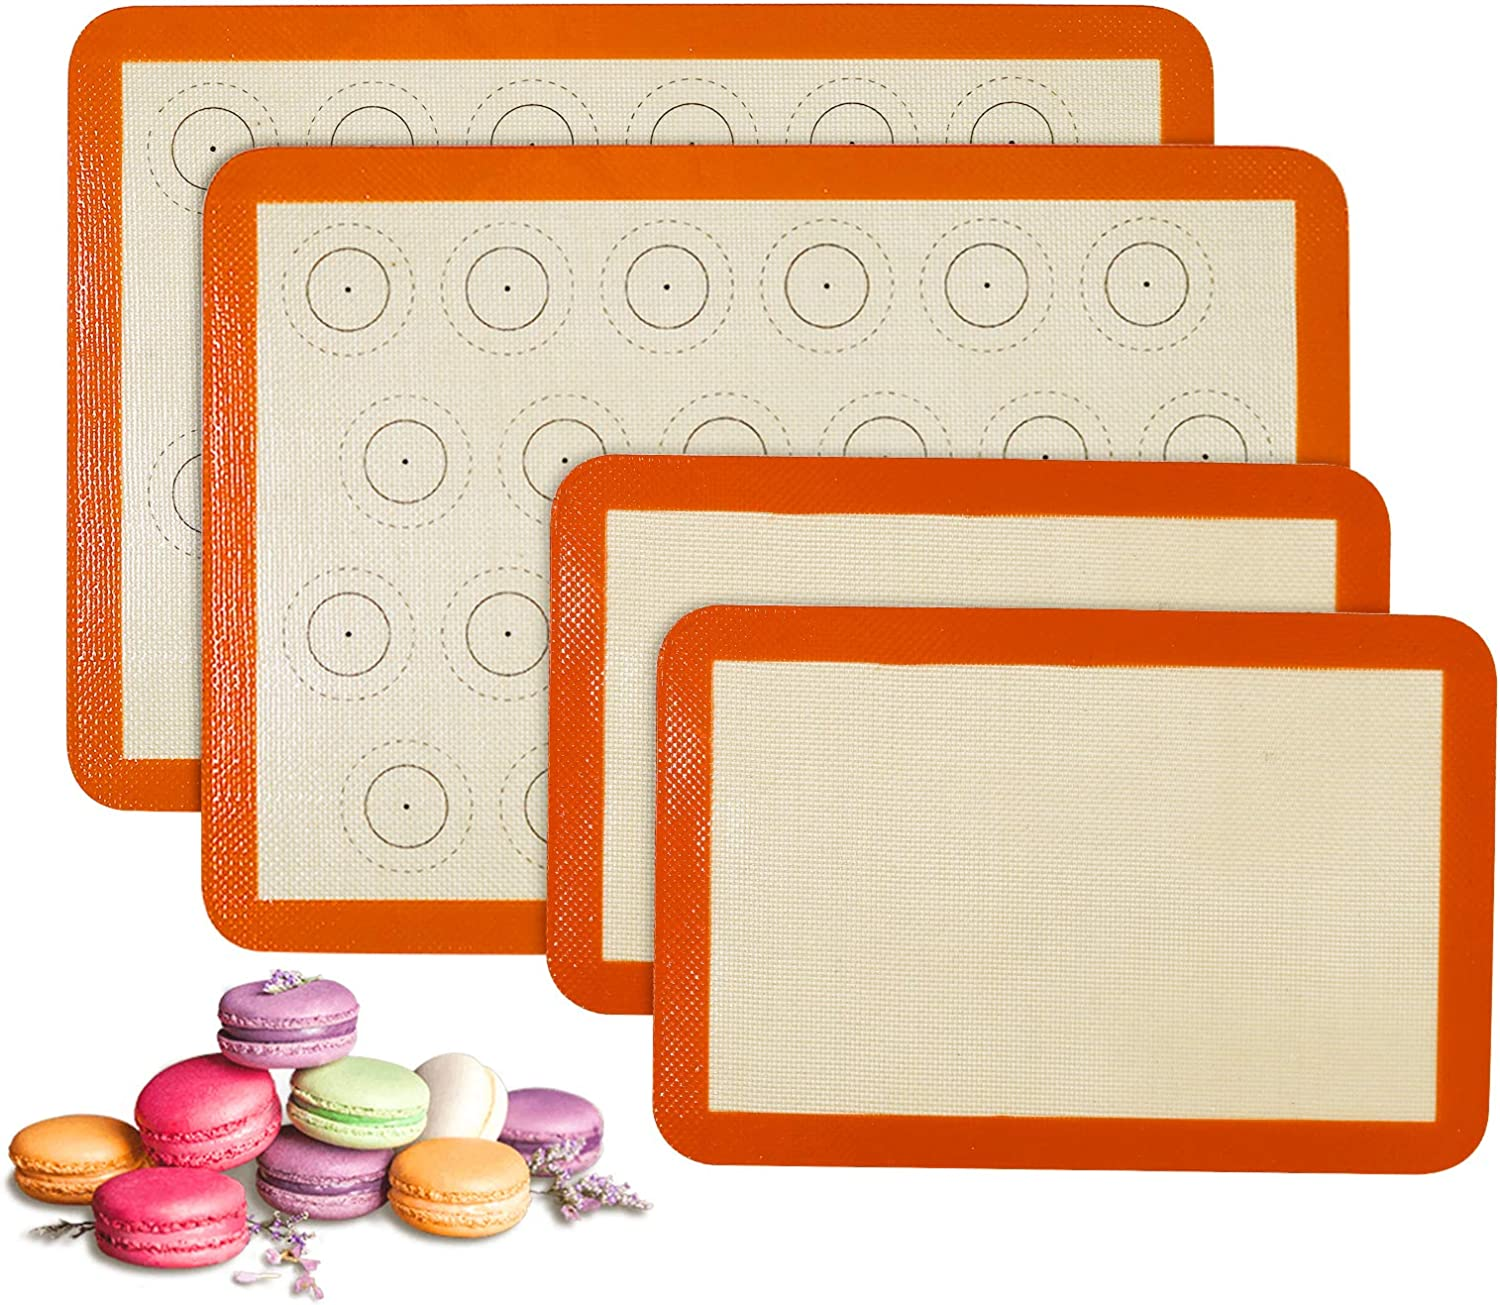 Silicone Baking Mat Set of 4 Lowest price challenge 2 Sti Popular overseas and Non Quarter Sheet Half